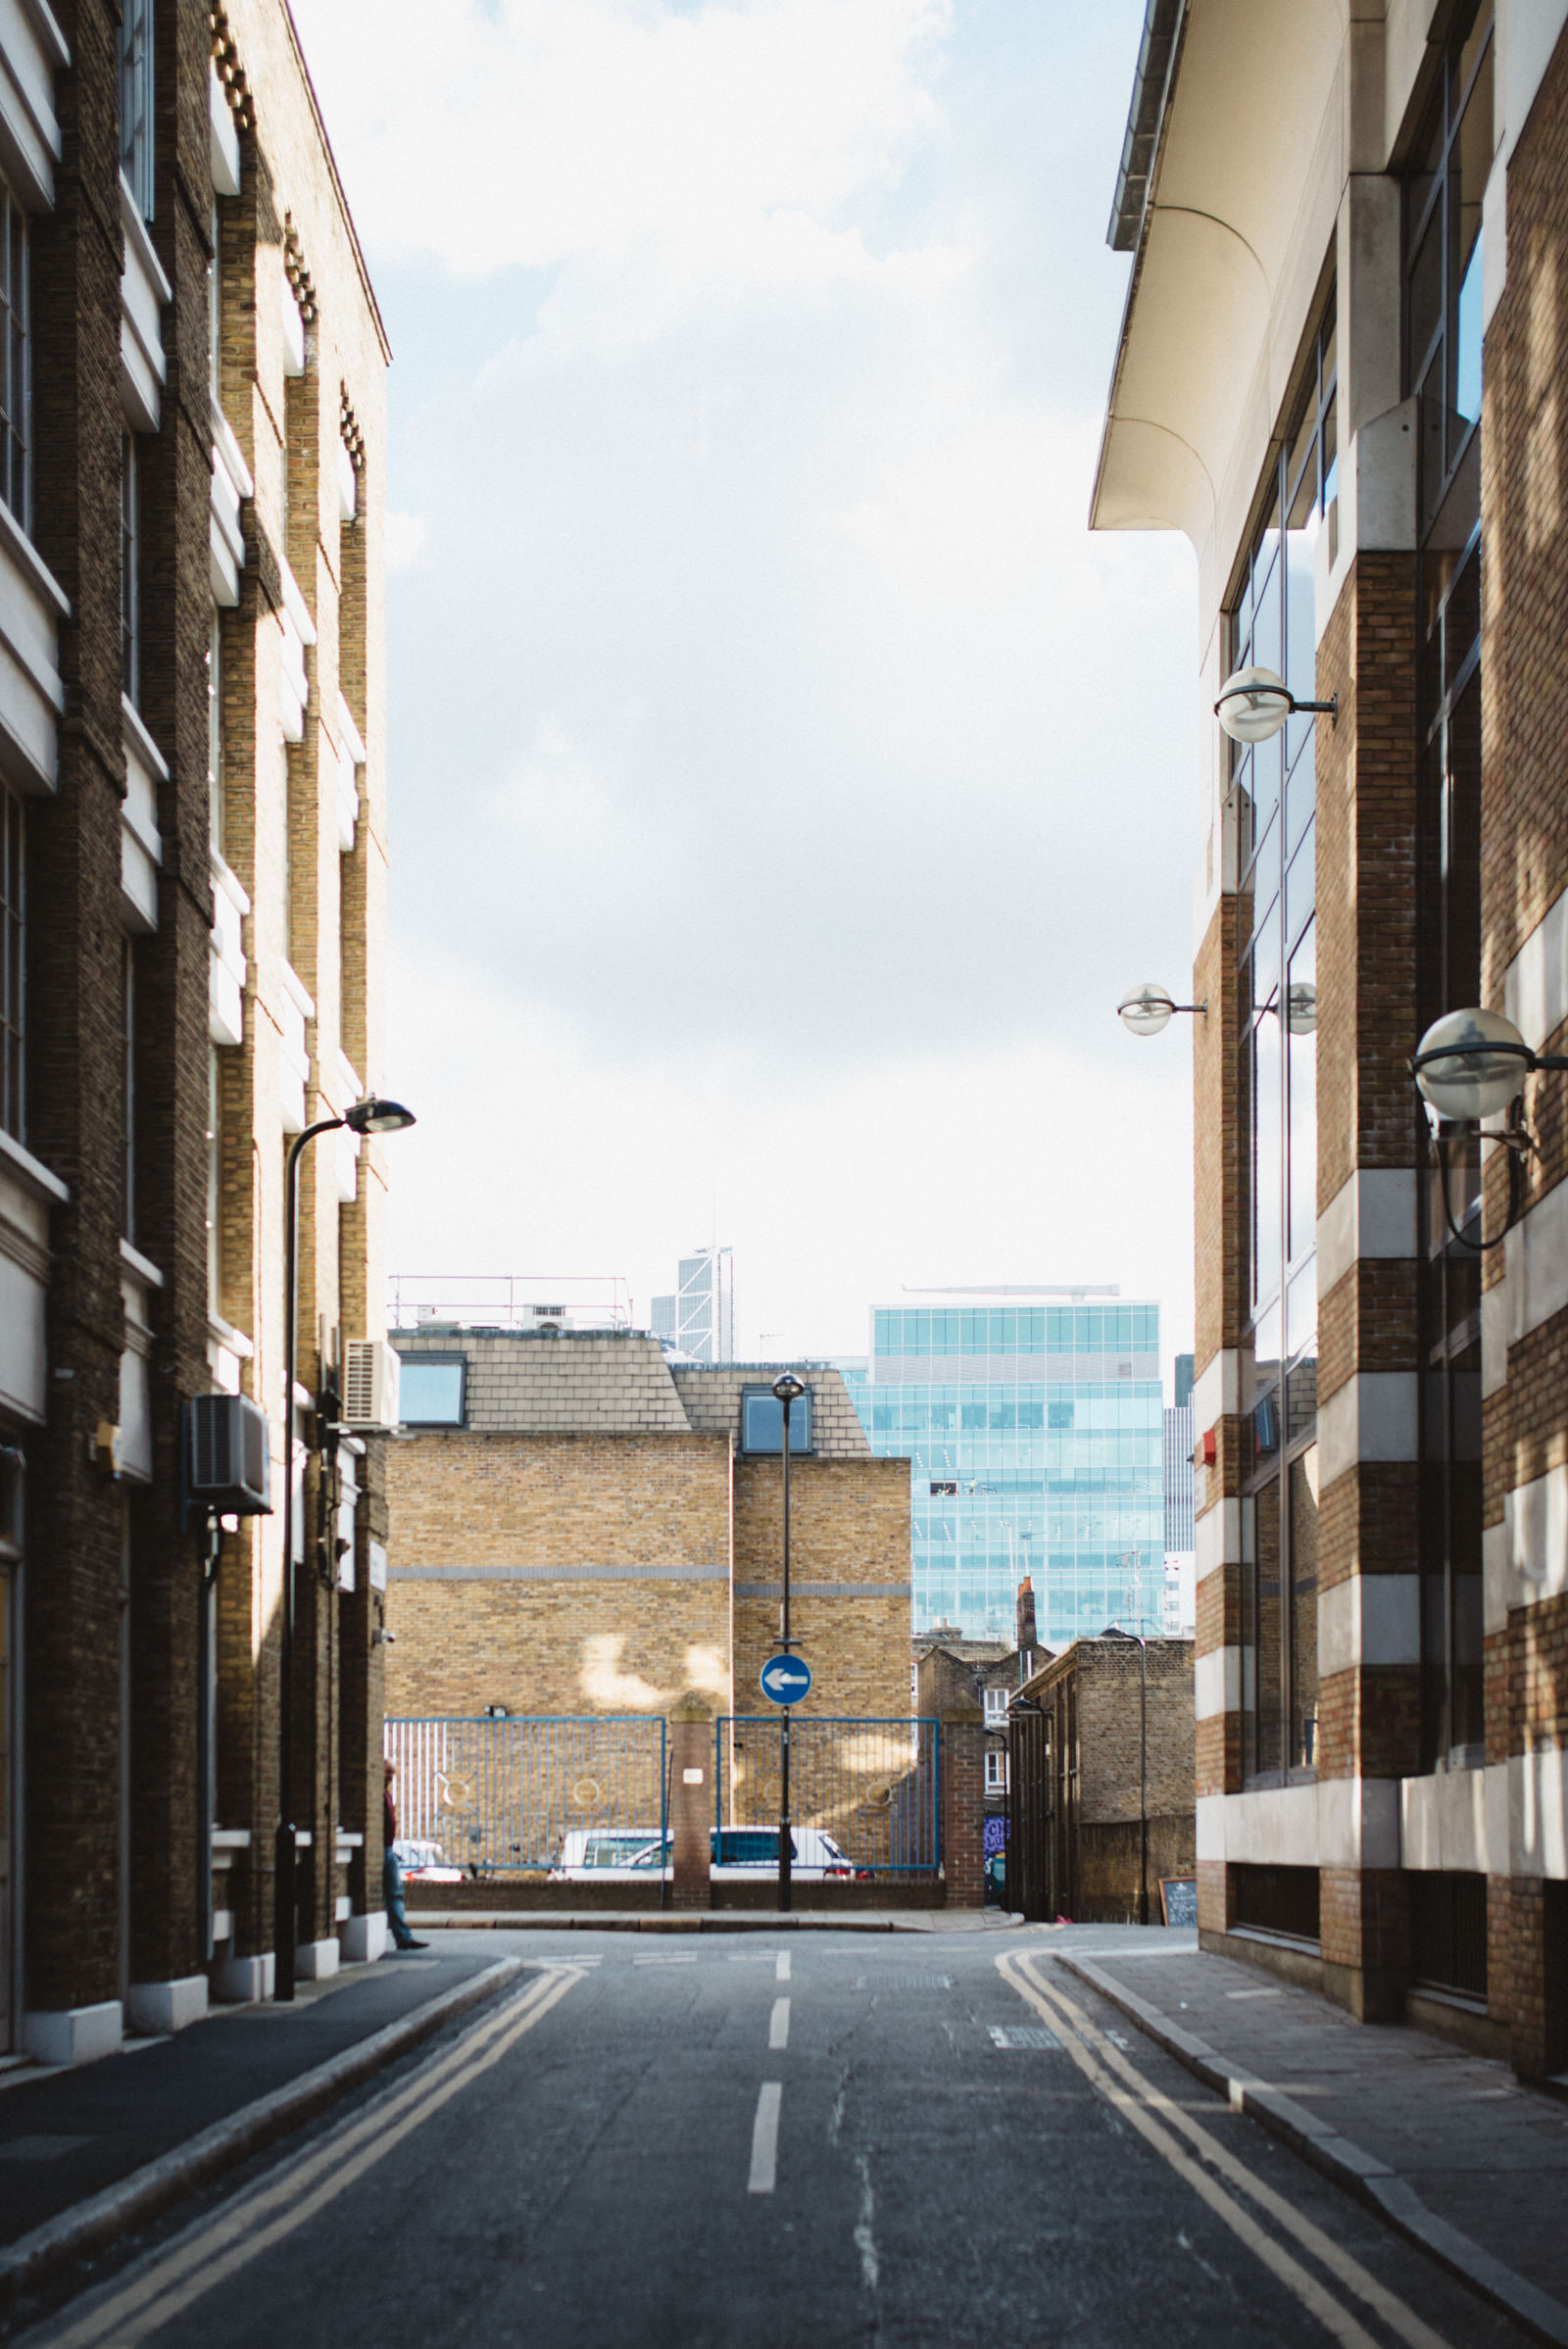 Ravey Street in Shoreditch, in the East end of London